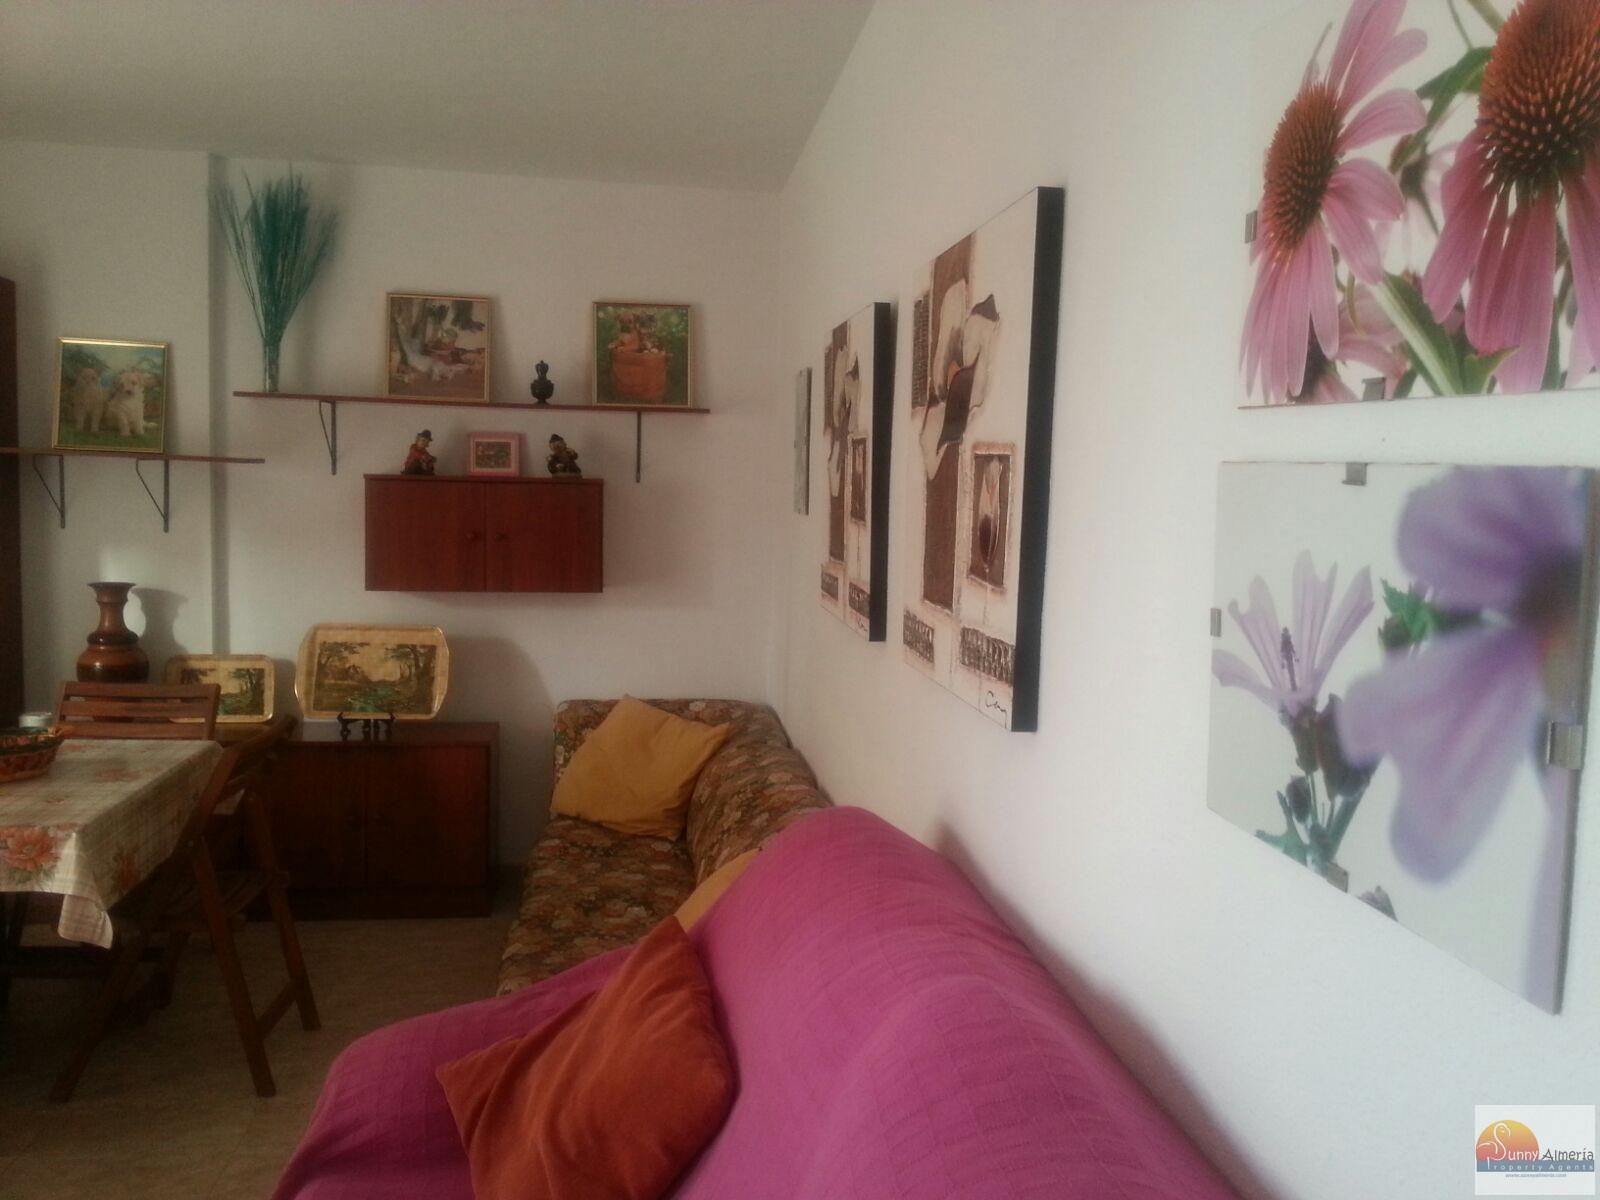 Flat for rent in Calle Buenos Aries 40 (Roquetas de Mar), 550 €/month